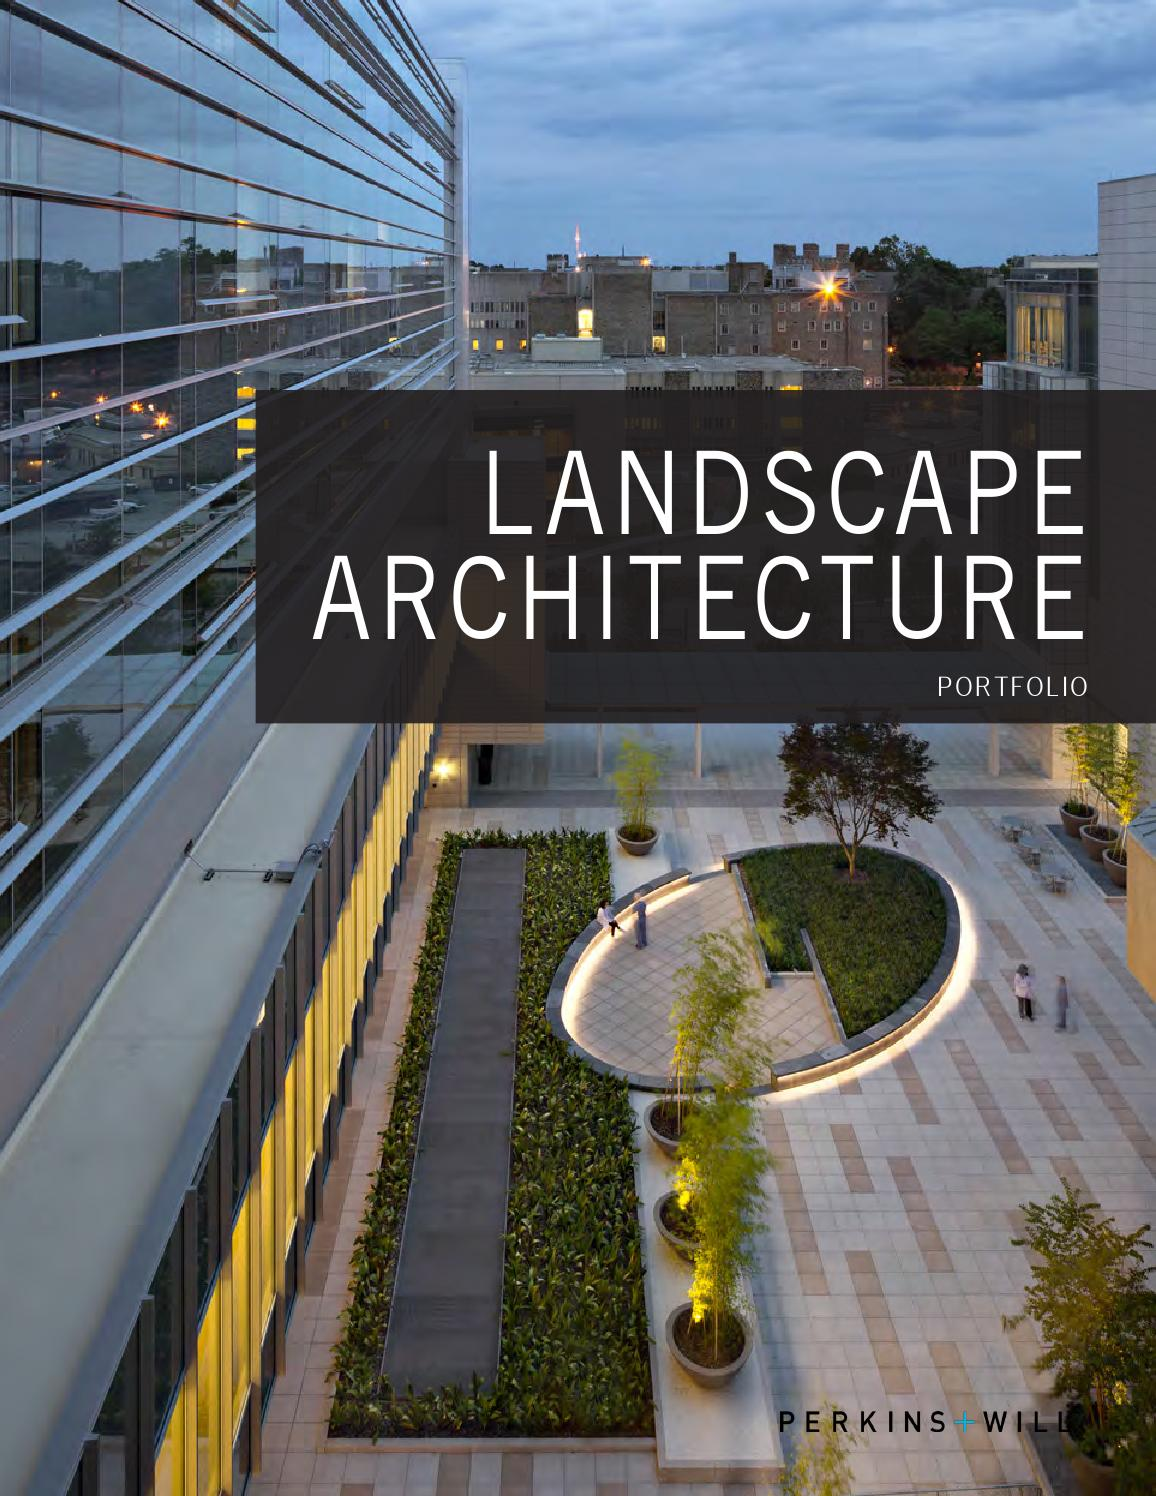 landscape architecture portfolio 2015 v1 2 by perkins will larch